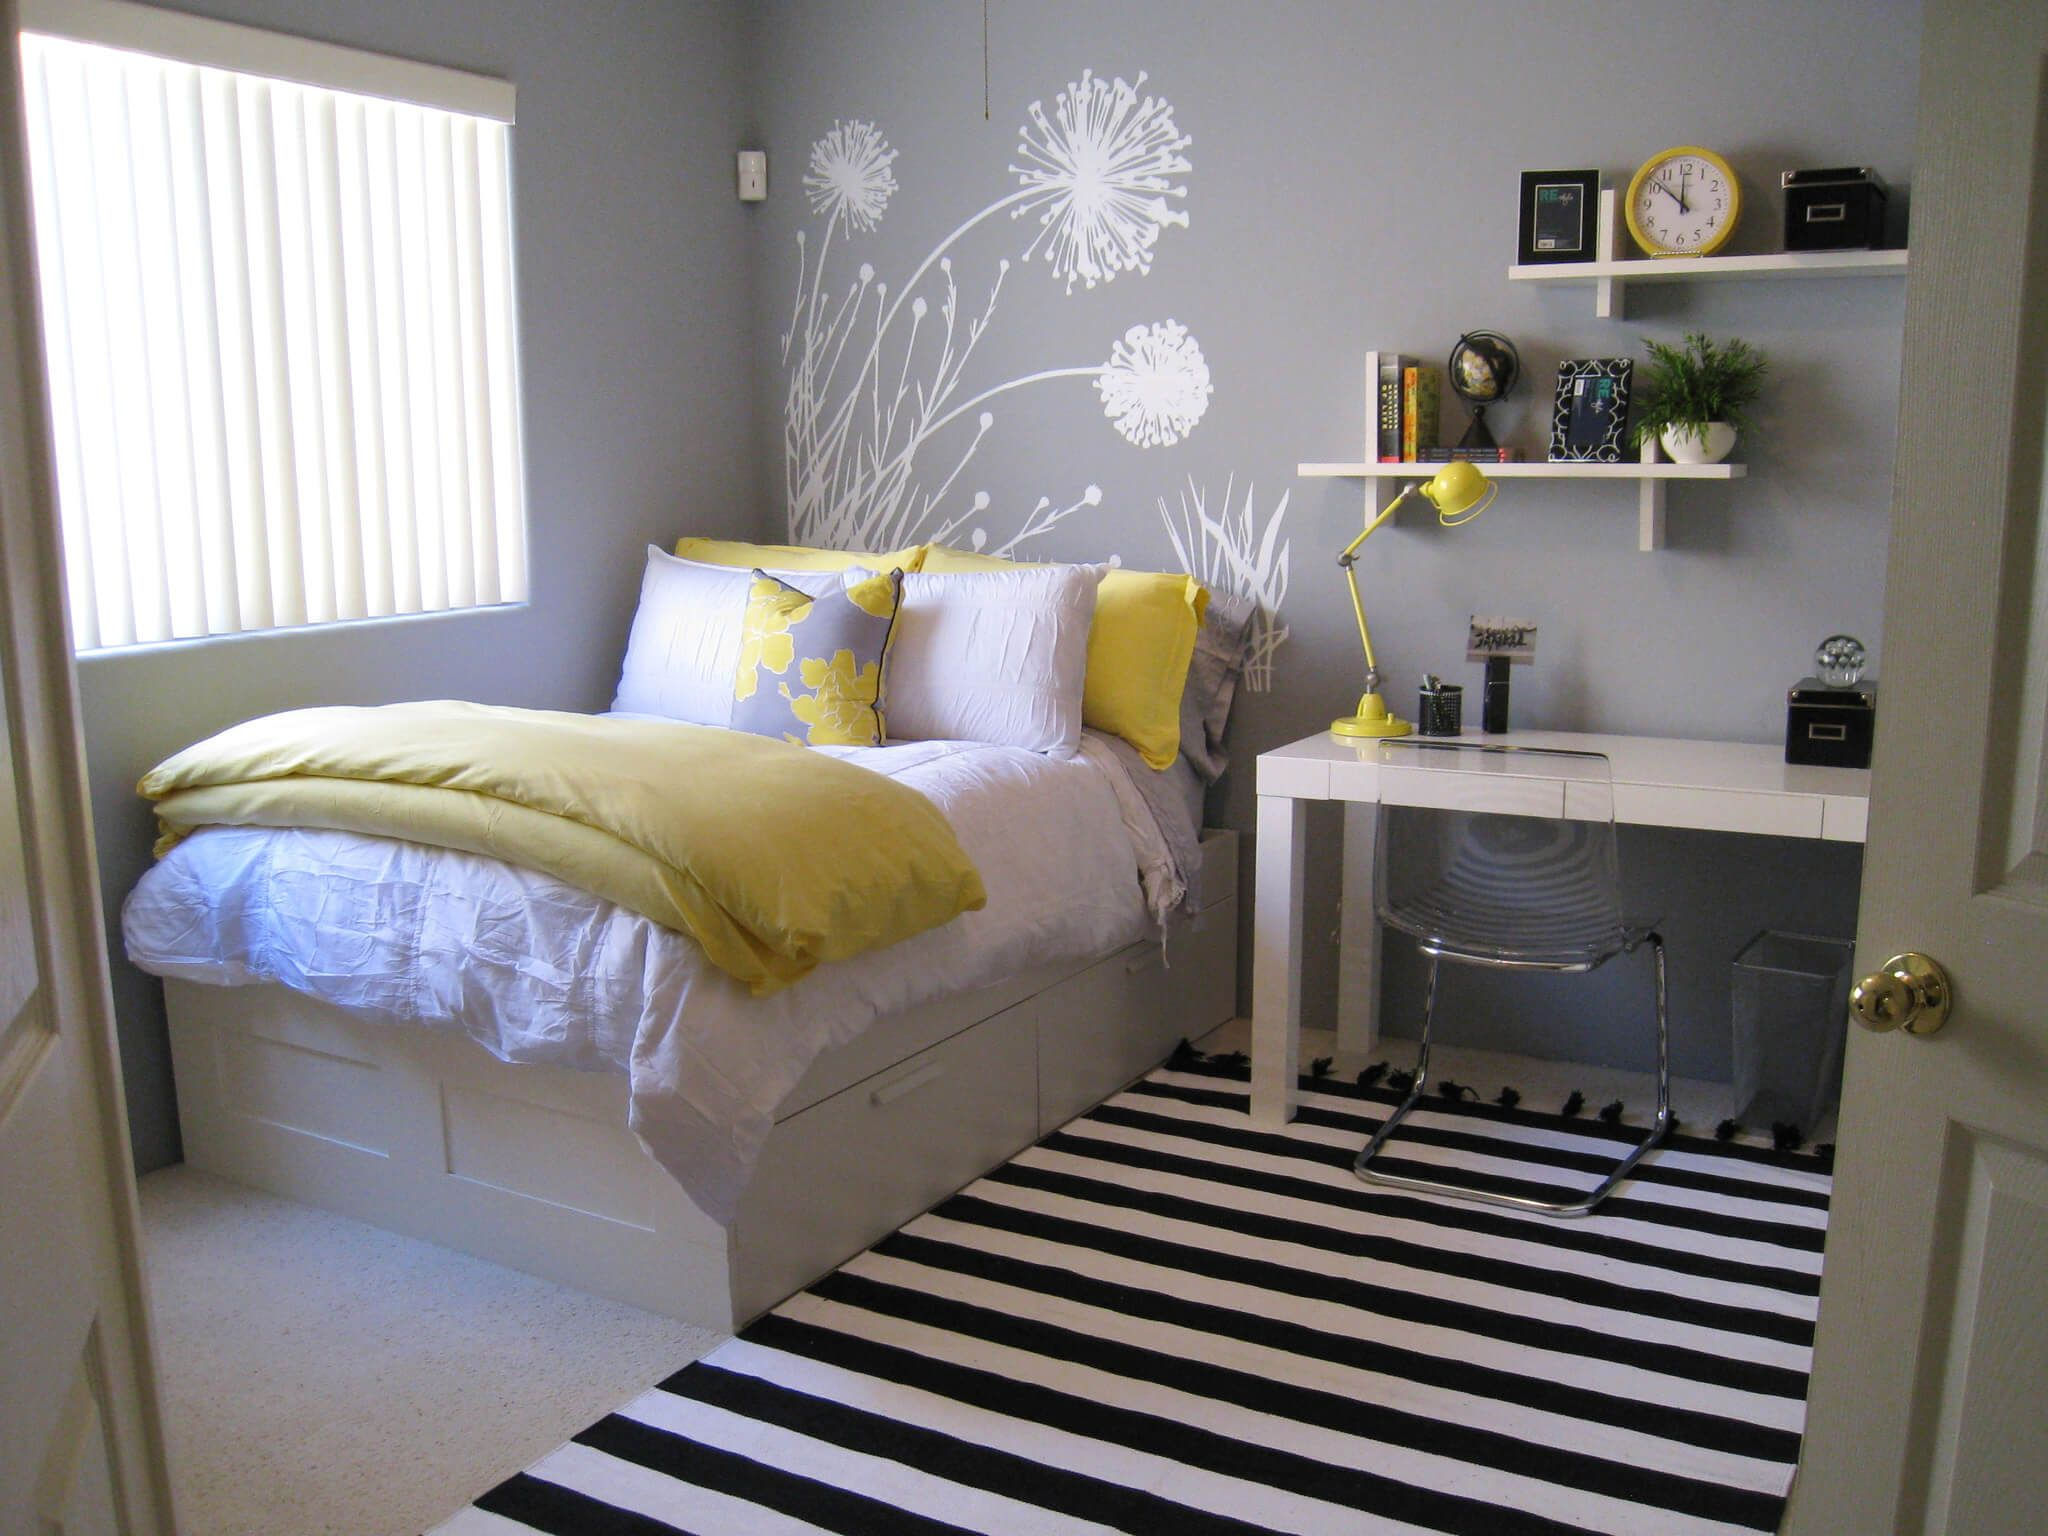 How To Decorate A Small Bedroom For A Teenager 45 Inspiring Small Bedrooms For The Home In 2019